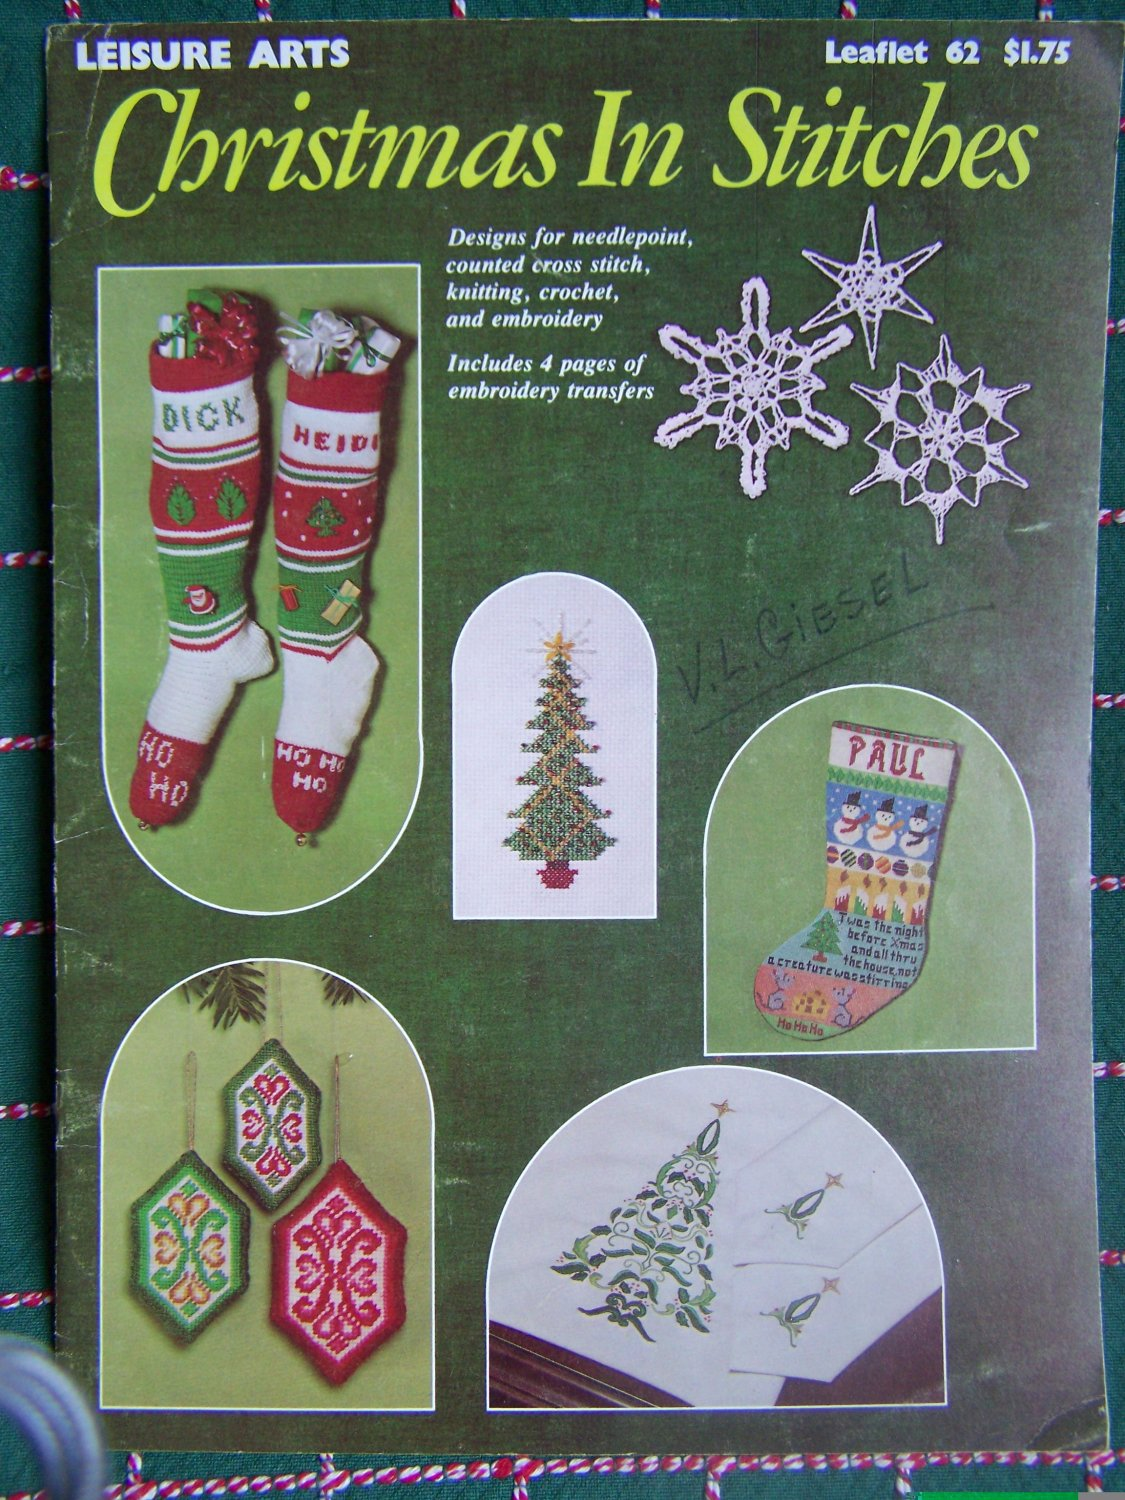 USA Free S&H 1970's Vintage Christmas Patterns Knitting Crochet Cross Stitch Needlepoint Embroidery